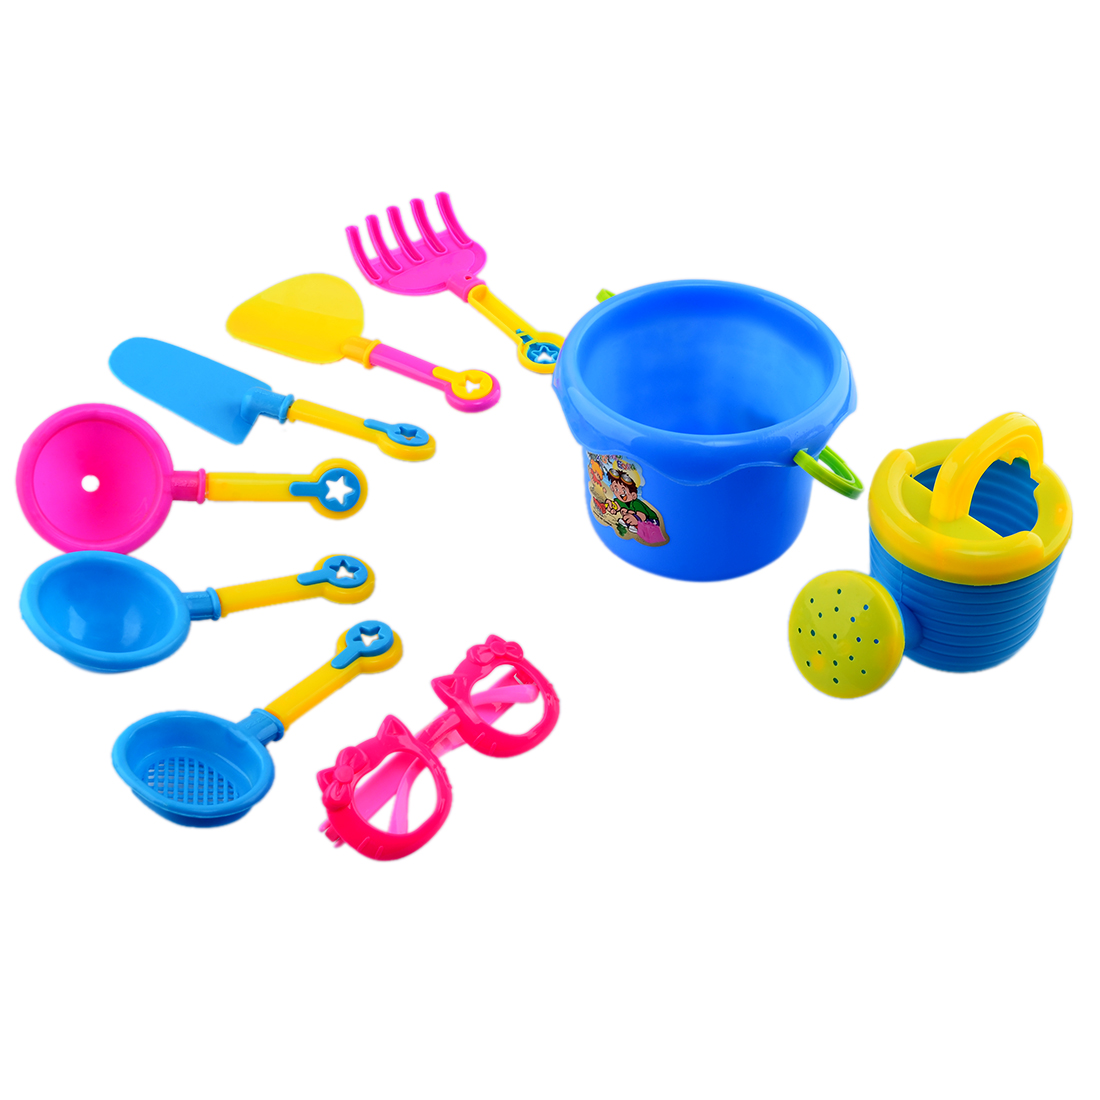 9 Pieces Kids Children Plastic Beach Sand Toys Set Shower Head Hand-held Bucket Shovels Tool Sunglasses for Kids Playing... by